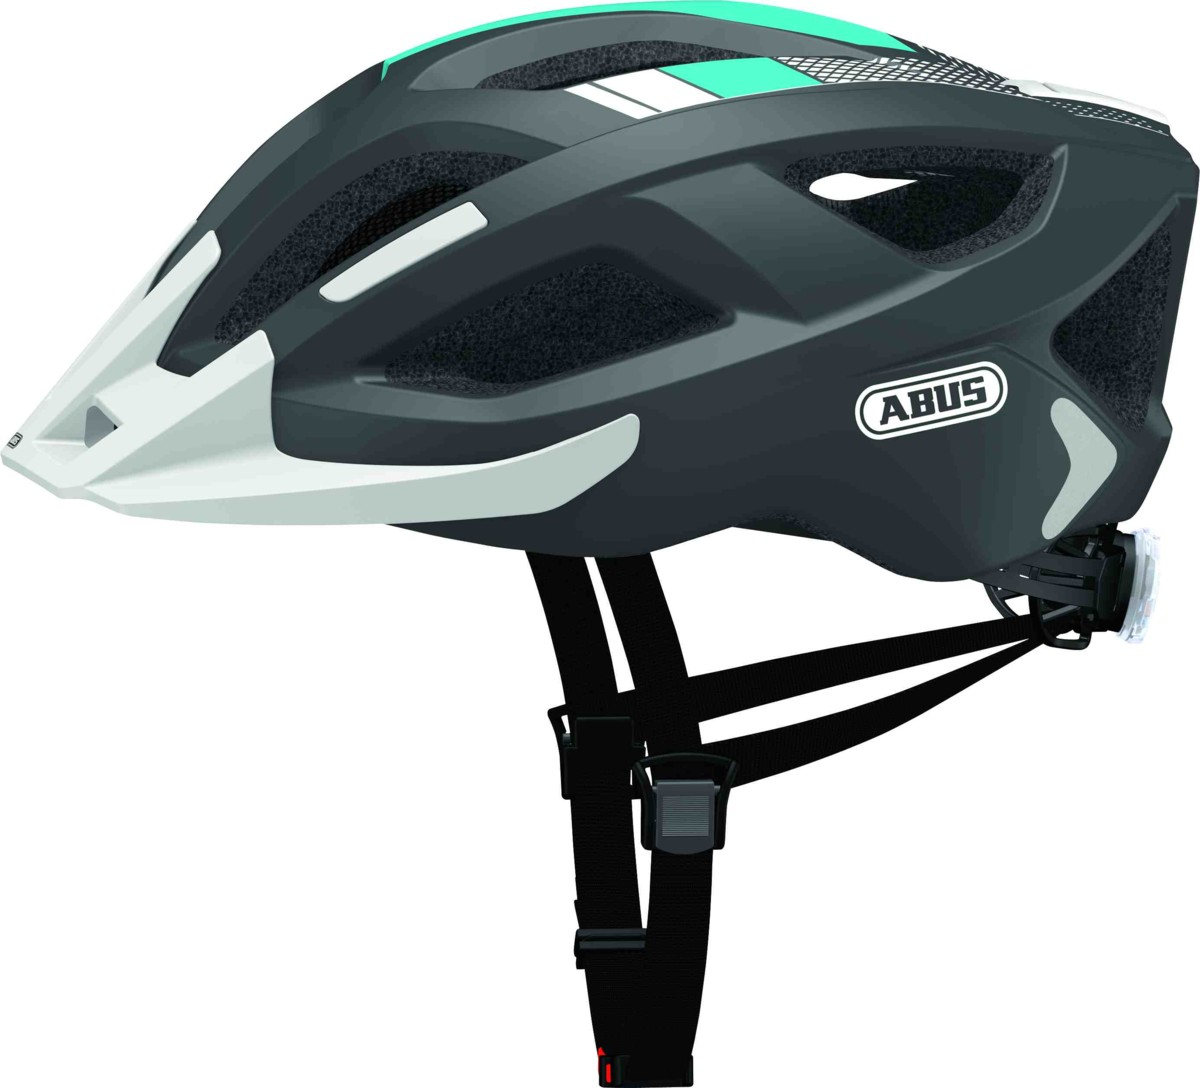 Aduro 2.0 race grey - Aduro 2.0 race grey M